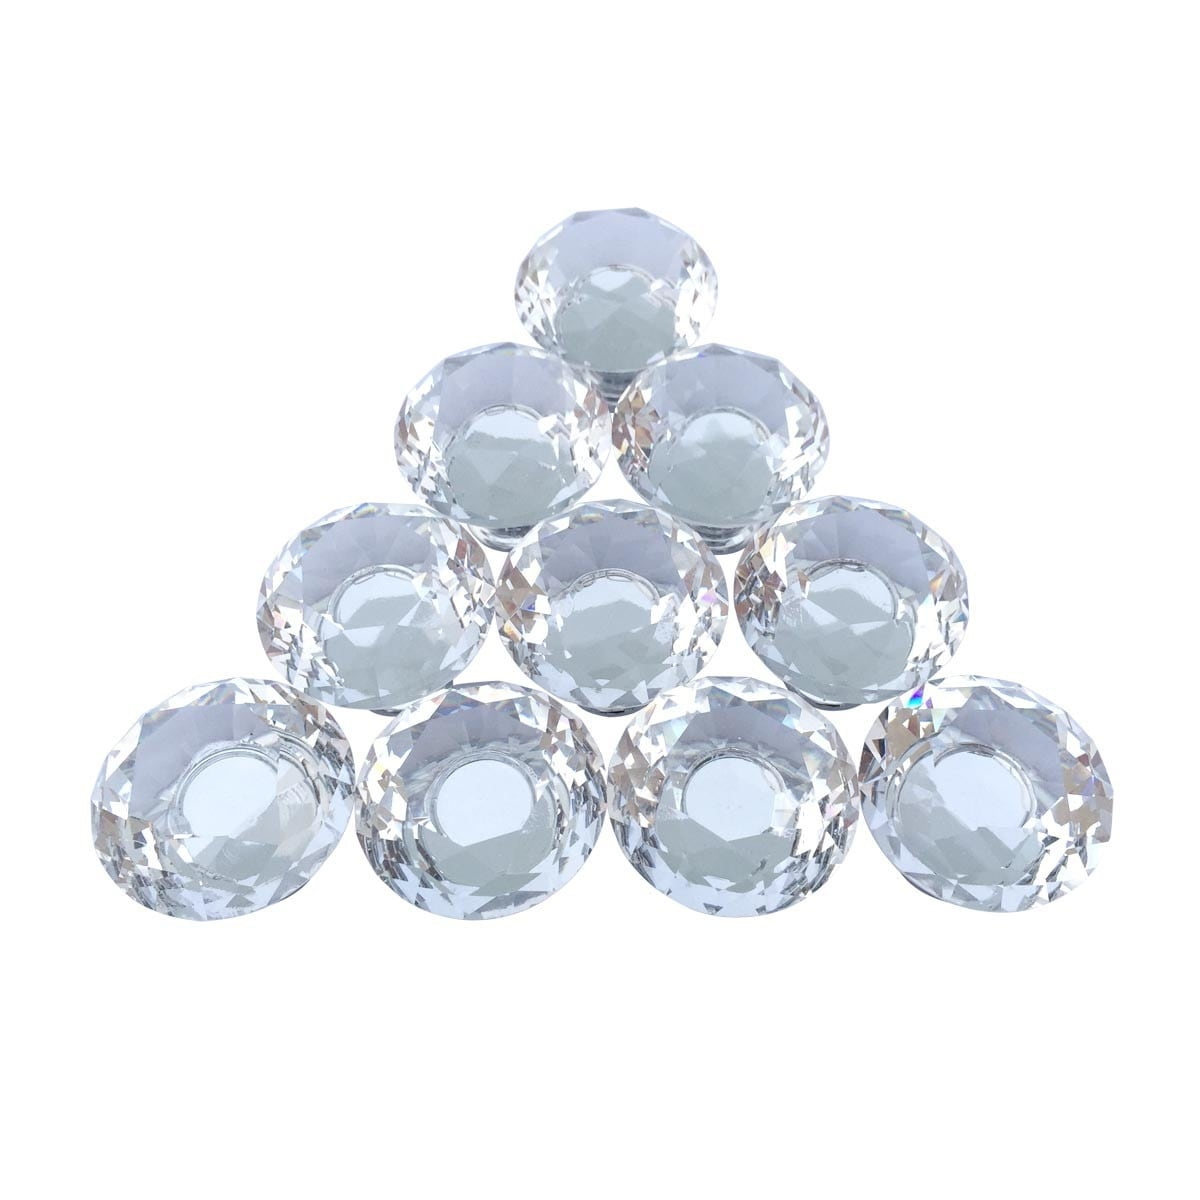 Shop clear glass cabinet knobs 1 18 inch diameter mushroom 10 pcs on sale free shipping on orders over 45 overstock com 13945315